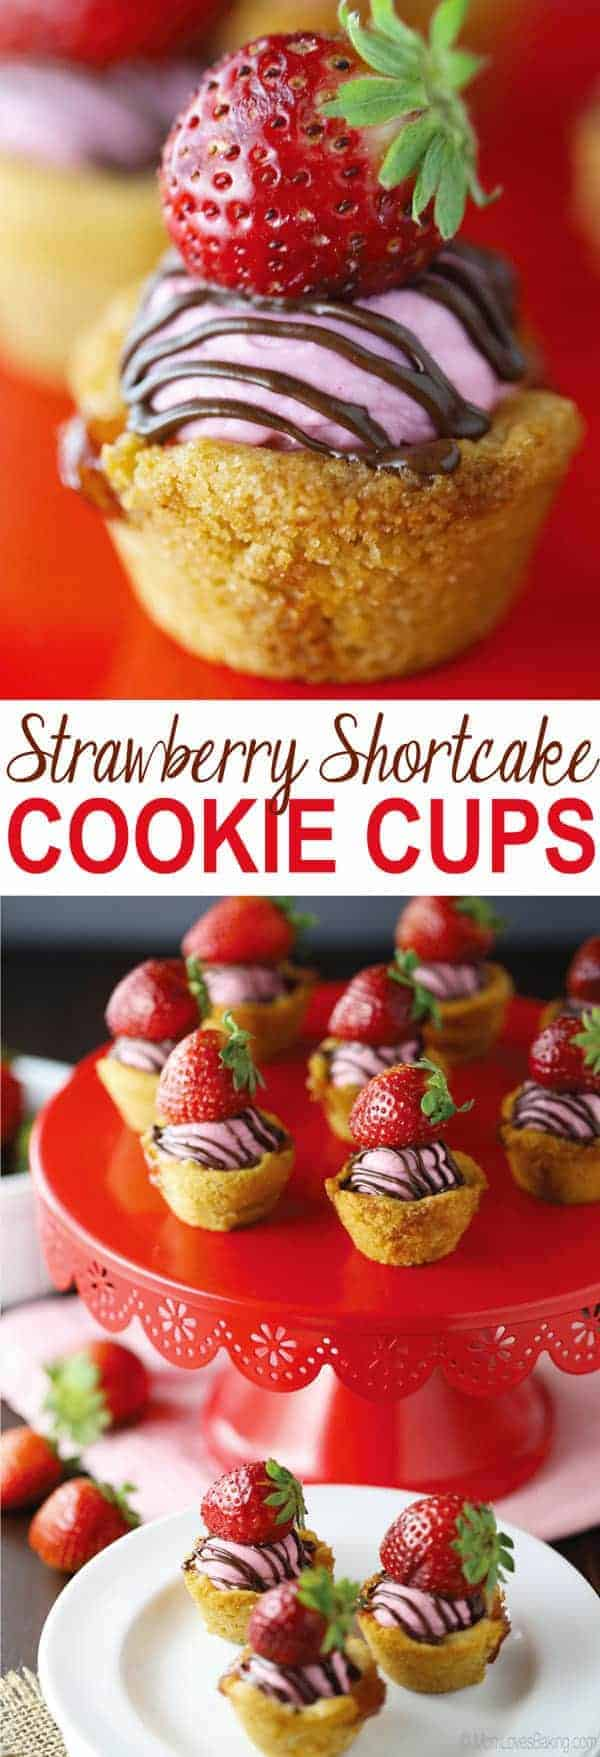 Strawberry Shortcake Cookie Cups